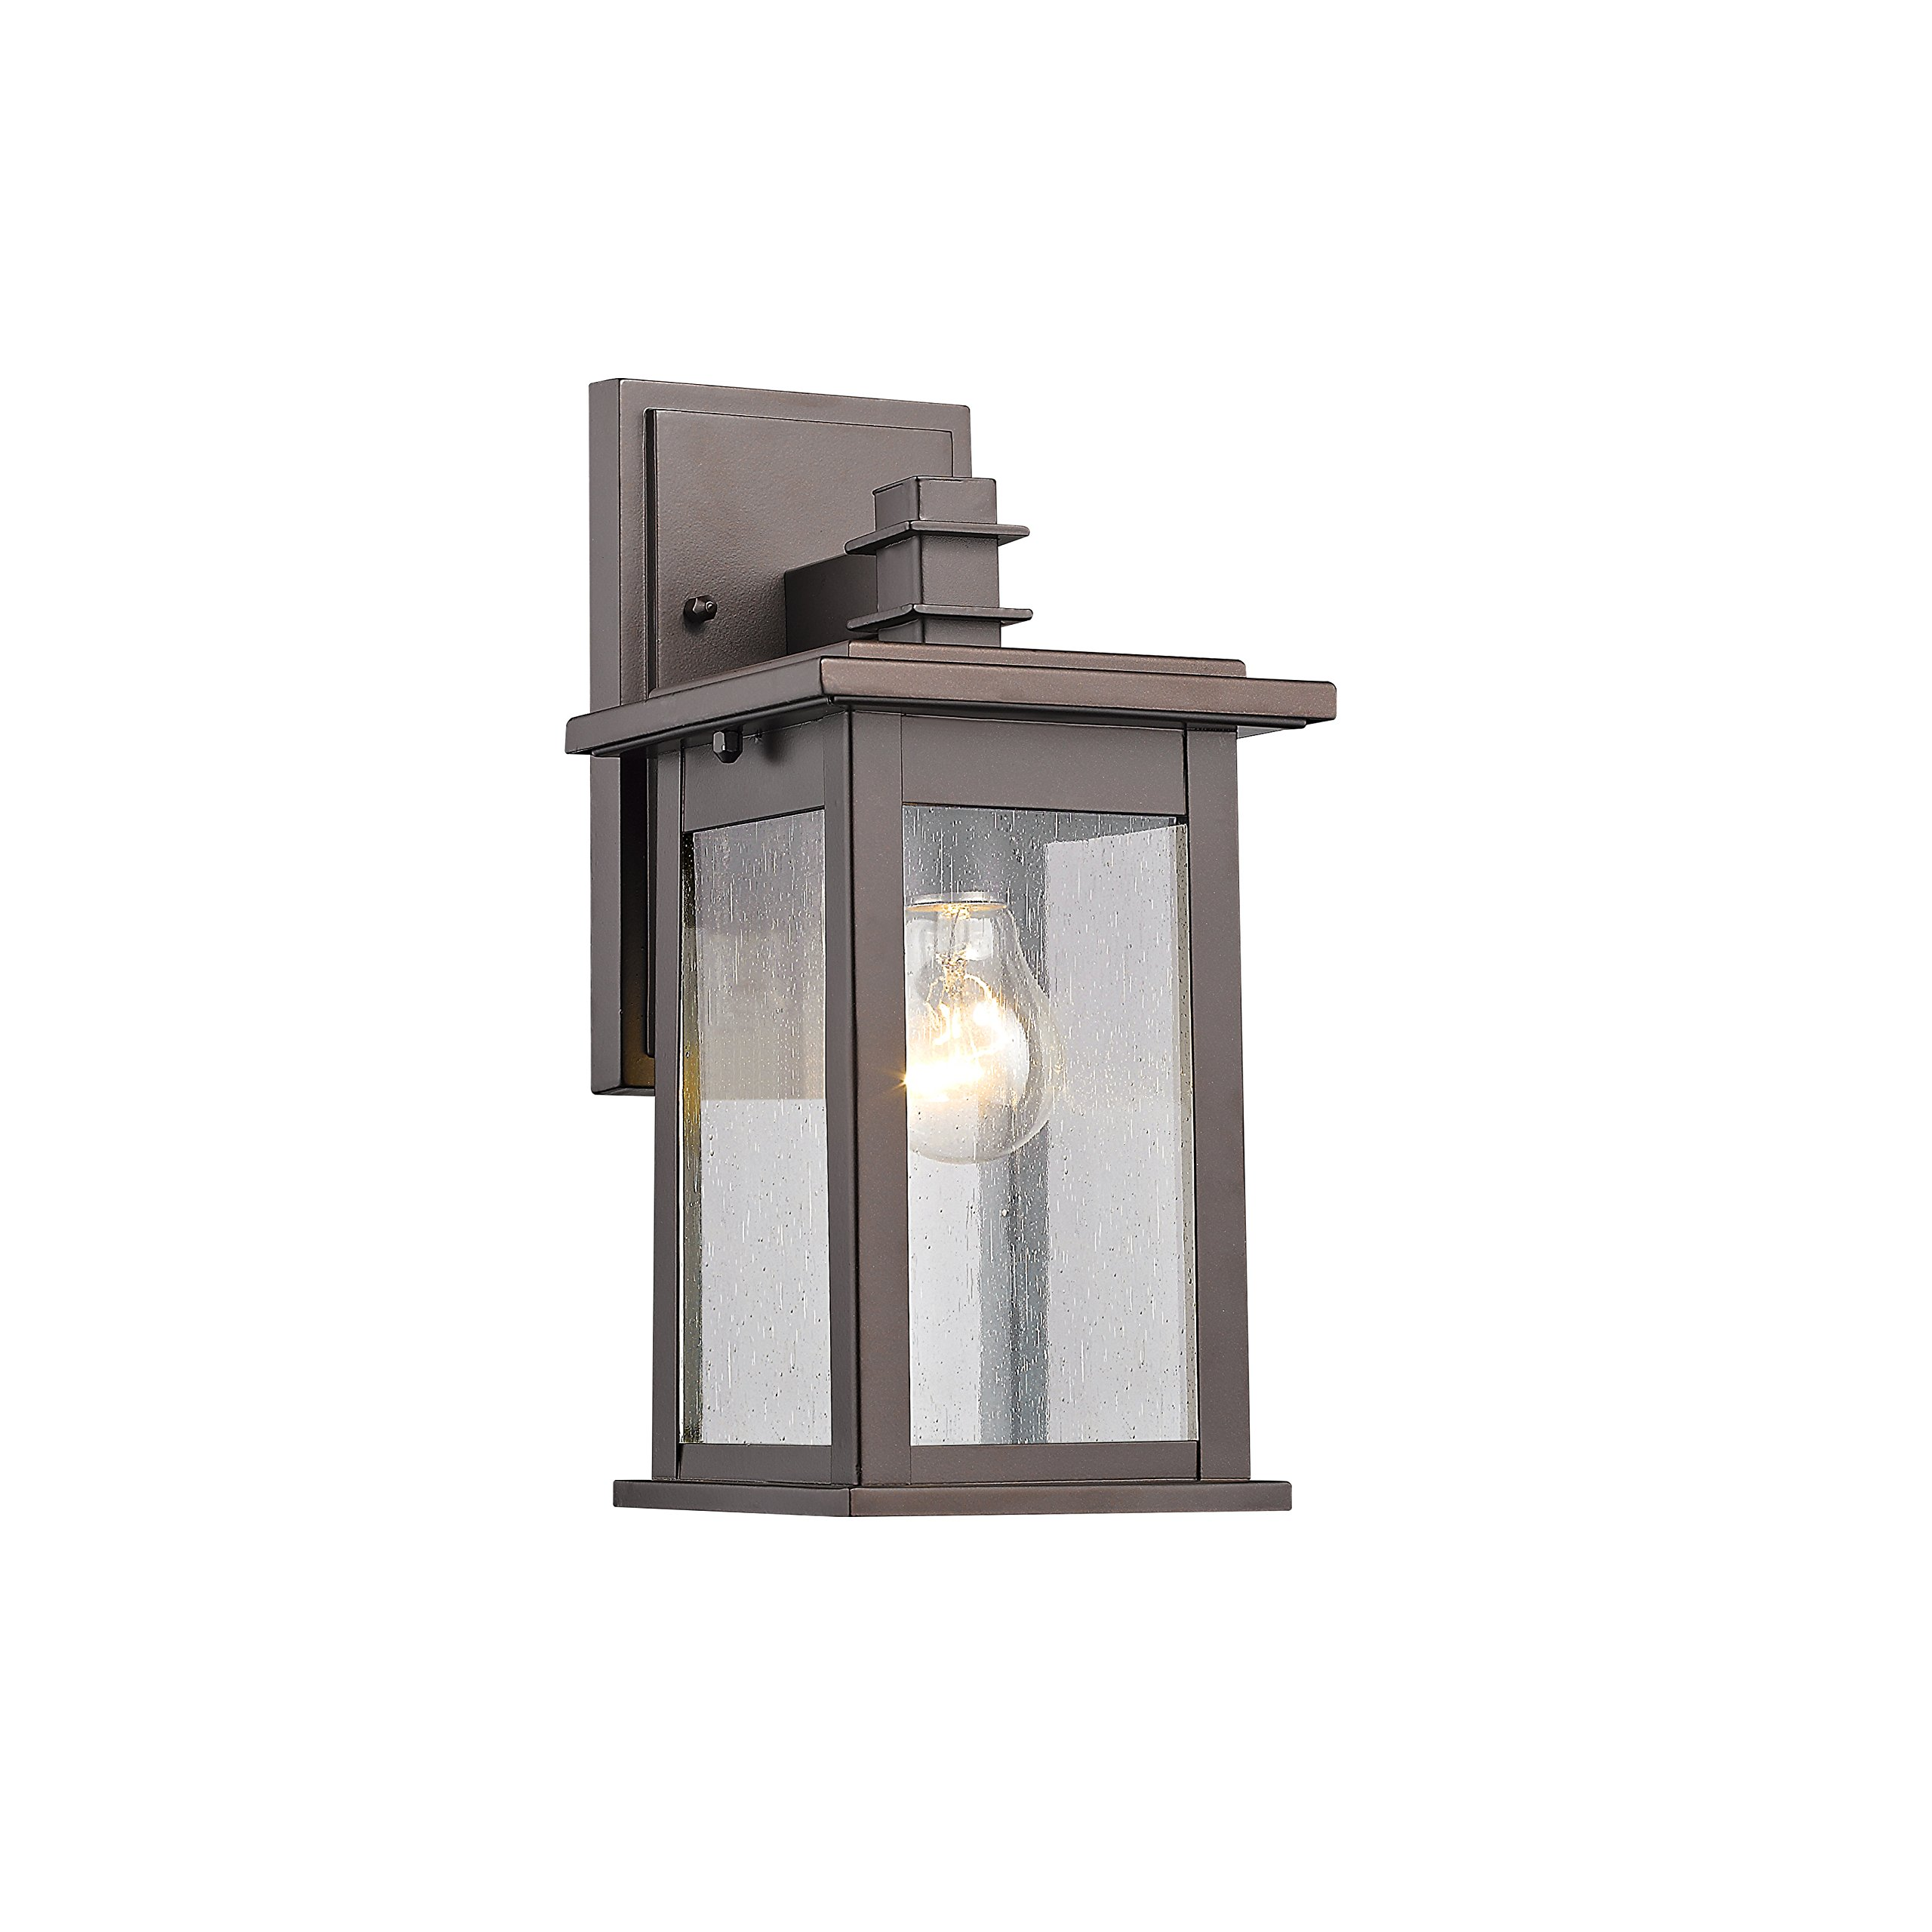 Chloe Lighting CH822031RB12-OD1 Transitional 1 Light Rubbed Bronze Outdoor Wall Sconce 12'' Height